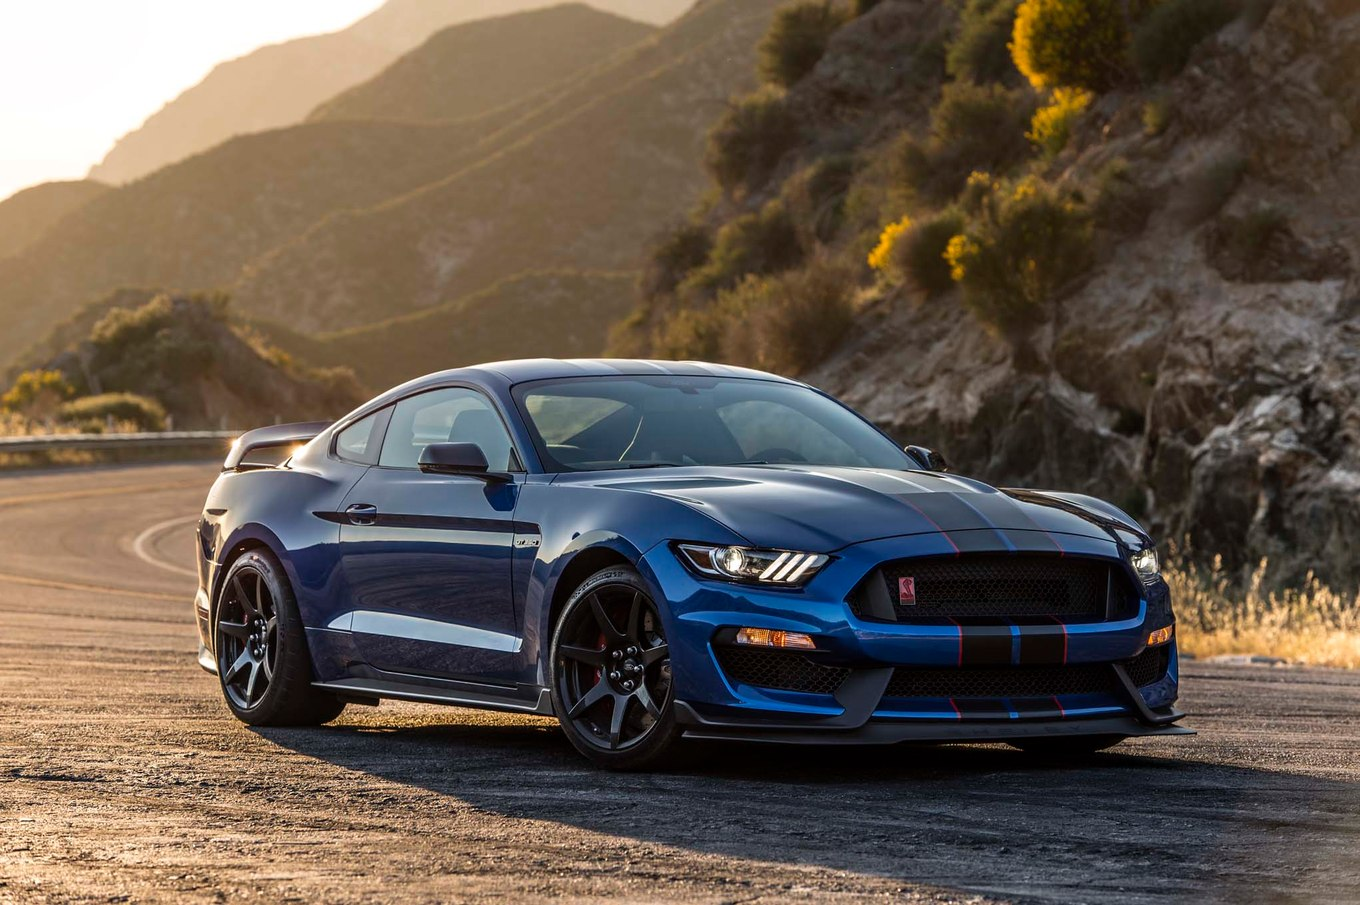 Ford shelby photo - 5